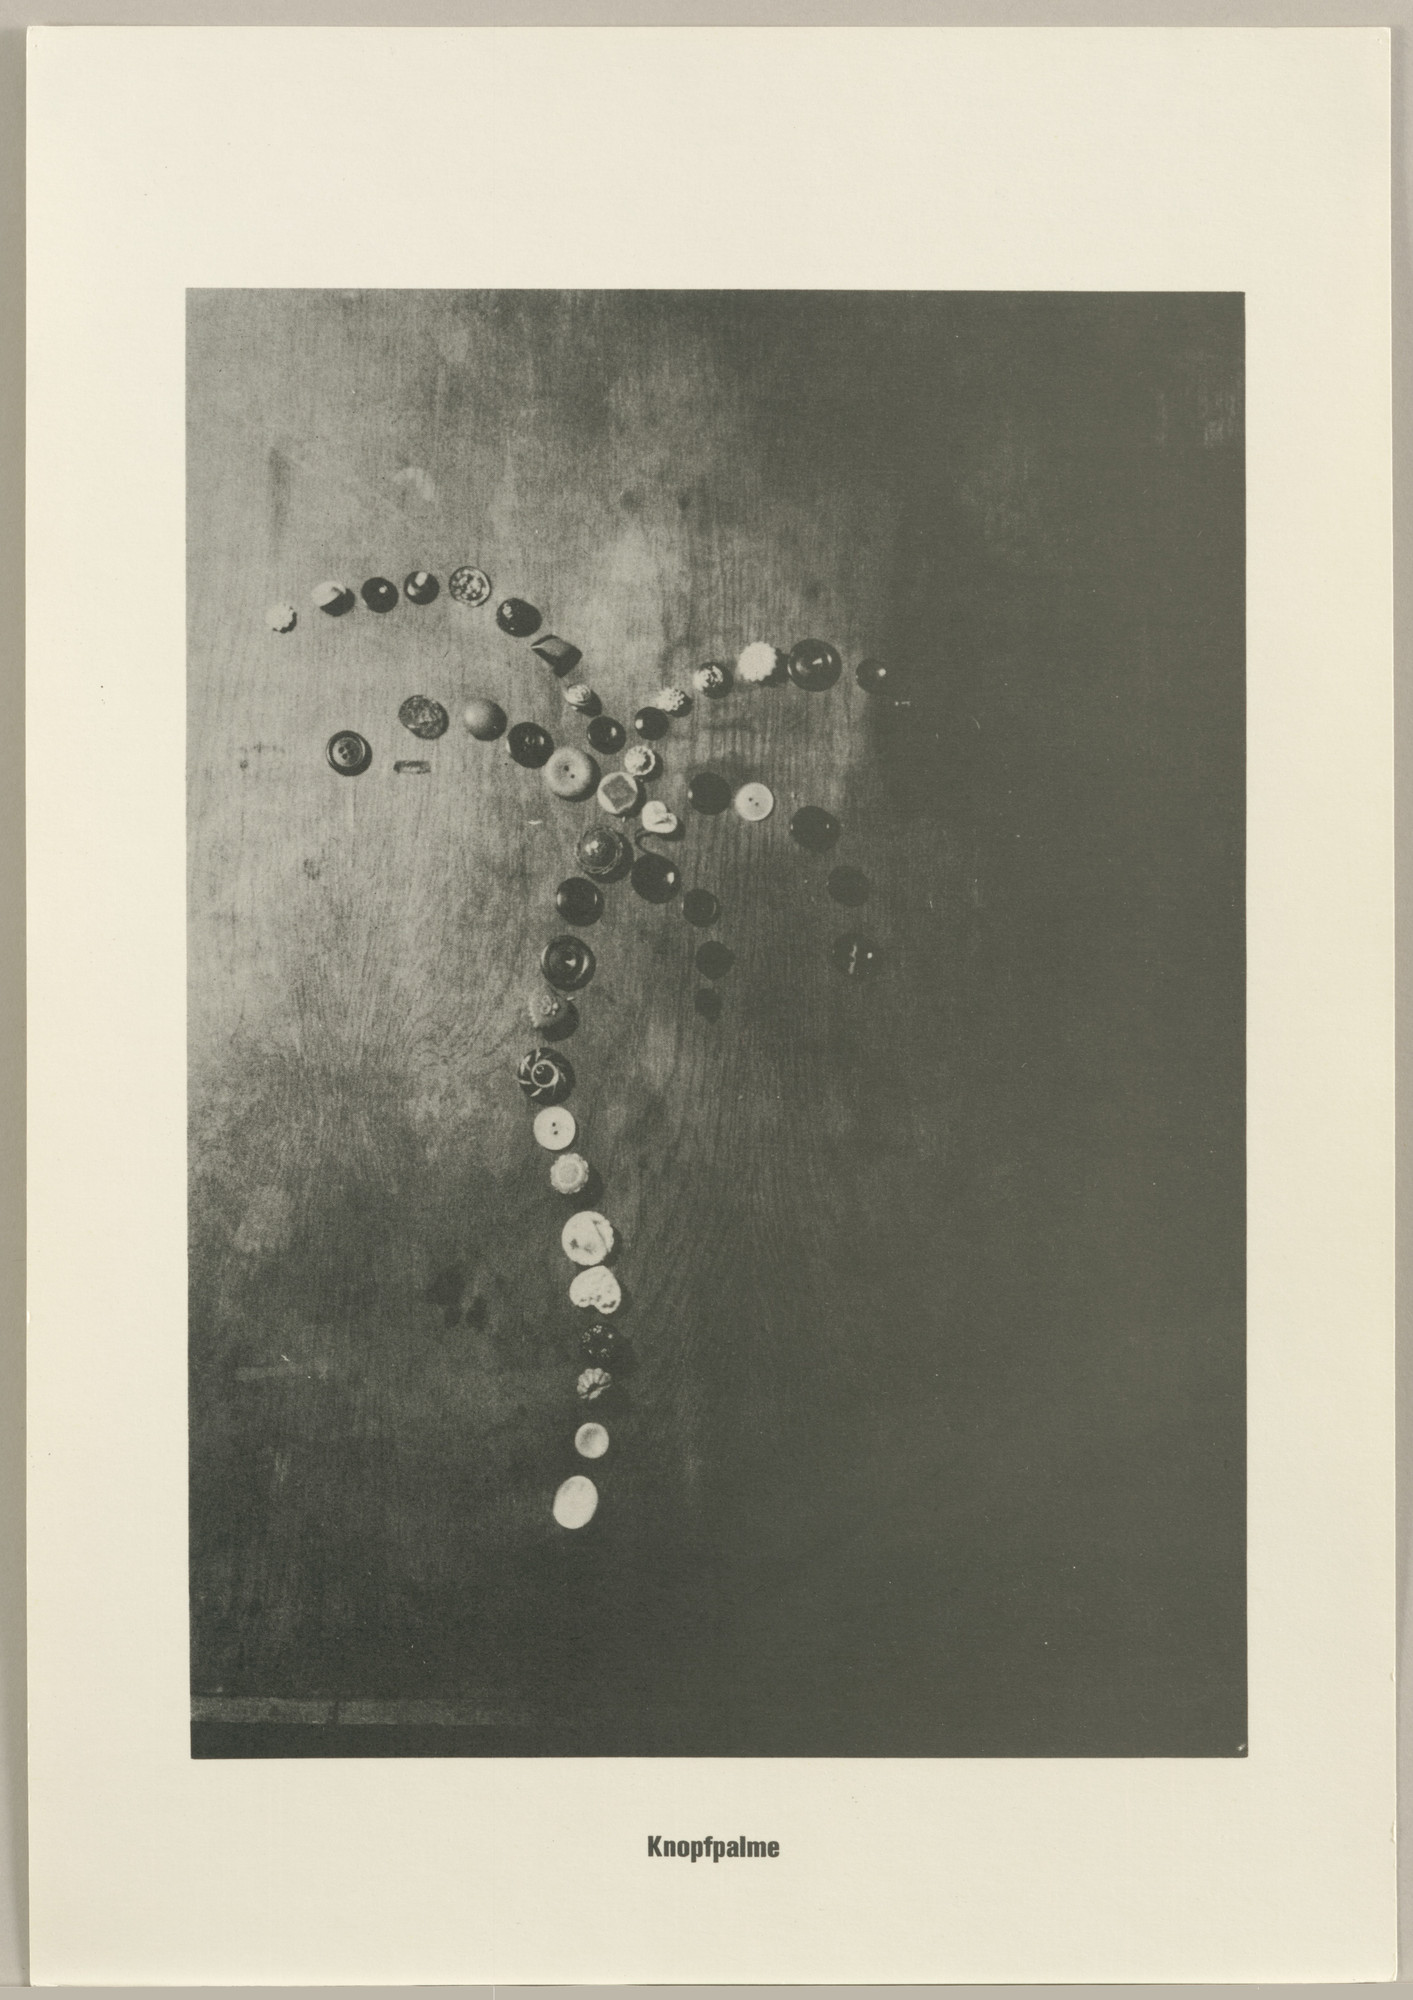 Sigmar Polke, Christof  Kohlhöfer. Button Palm Tree (Knopfpalme) from the Palm Tree Series (Palmenserie) from .....Higher Beings Ordain (.....Höhere Wesen befehlen). 1966, published 1968